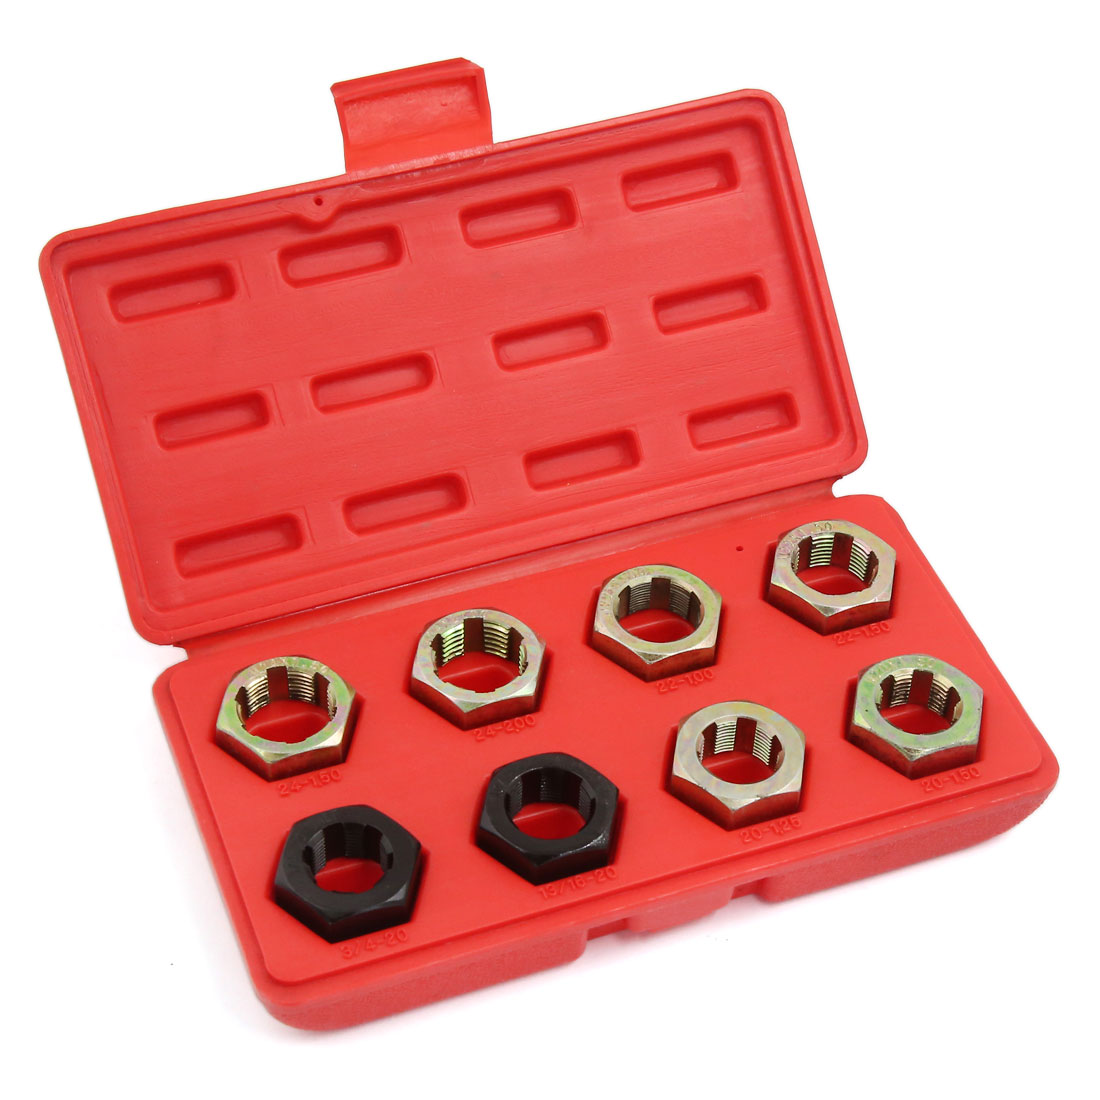 8pcs Spindle Rethreading Die Set in Case Thread Restore For Car